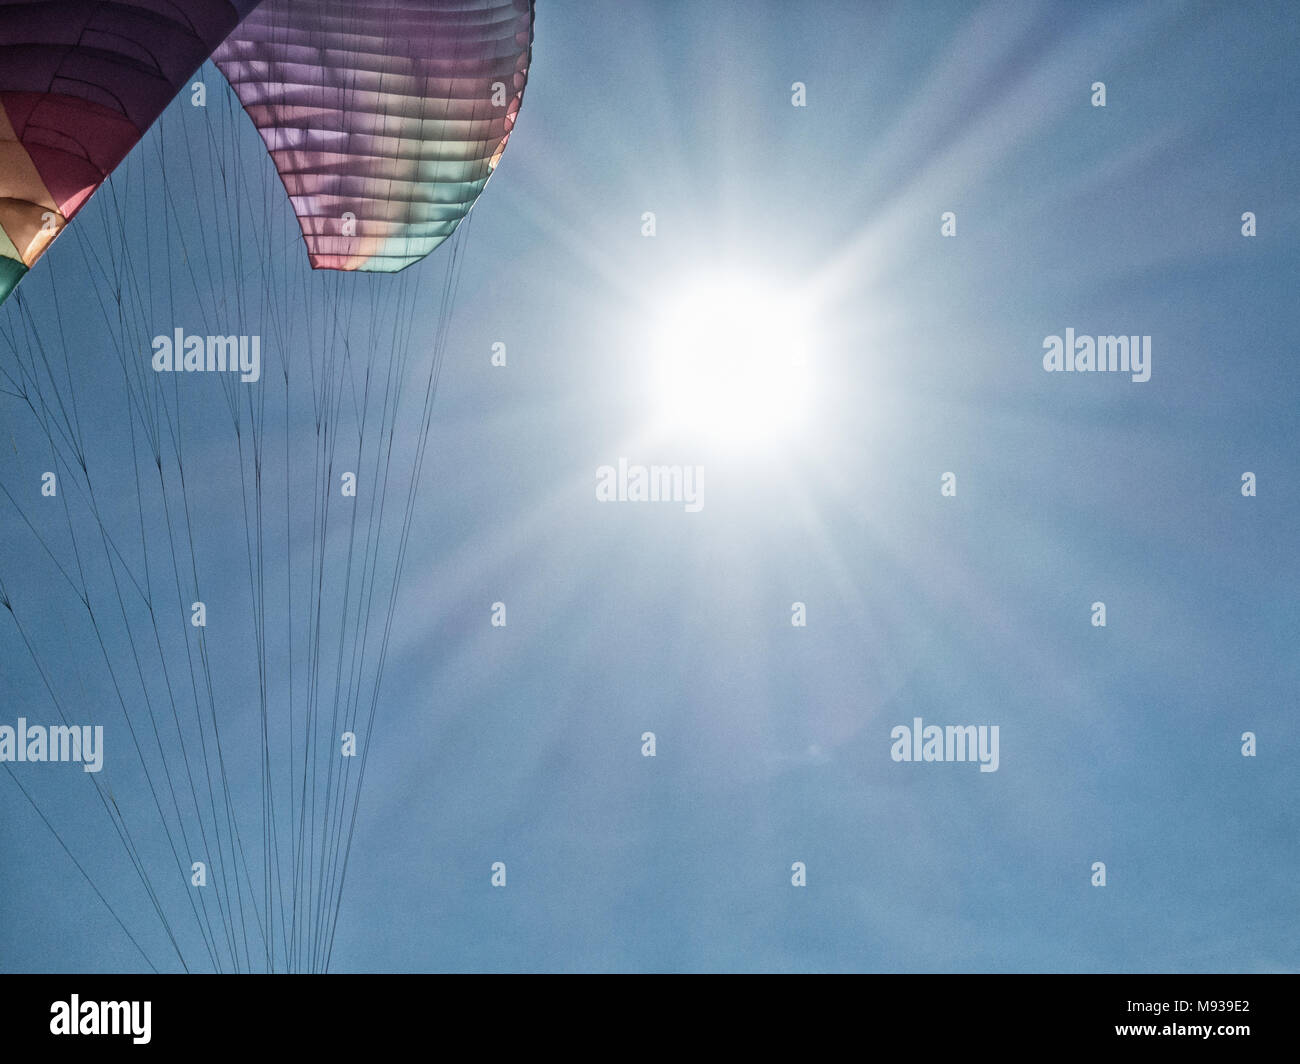 Paragliding: Paraglider with sun and blue sky in background Stock Photo